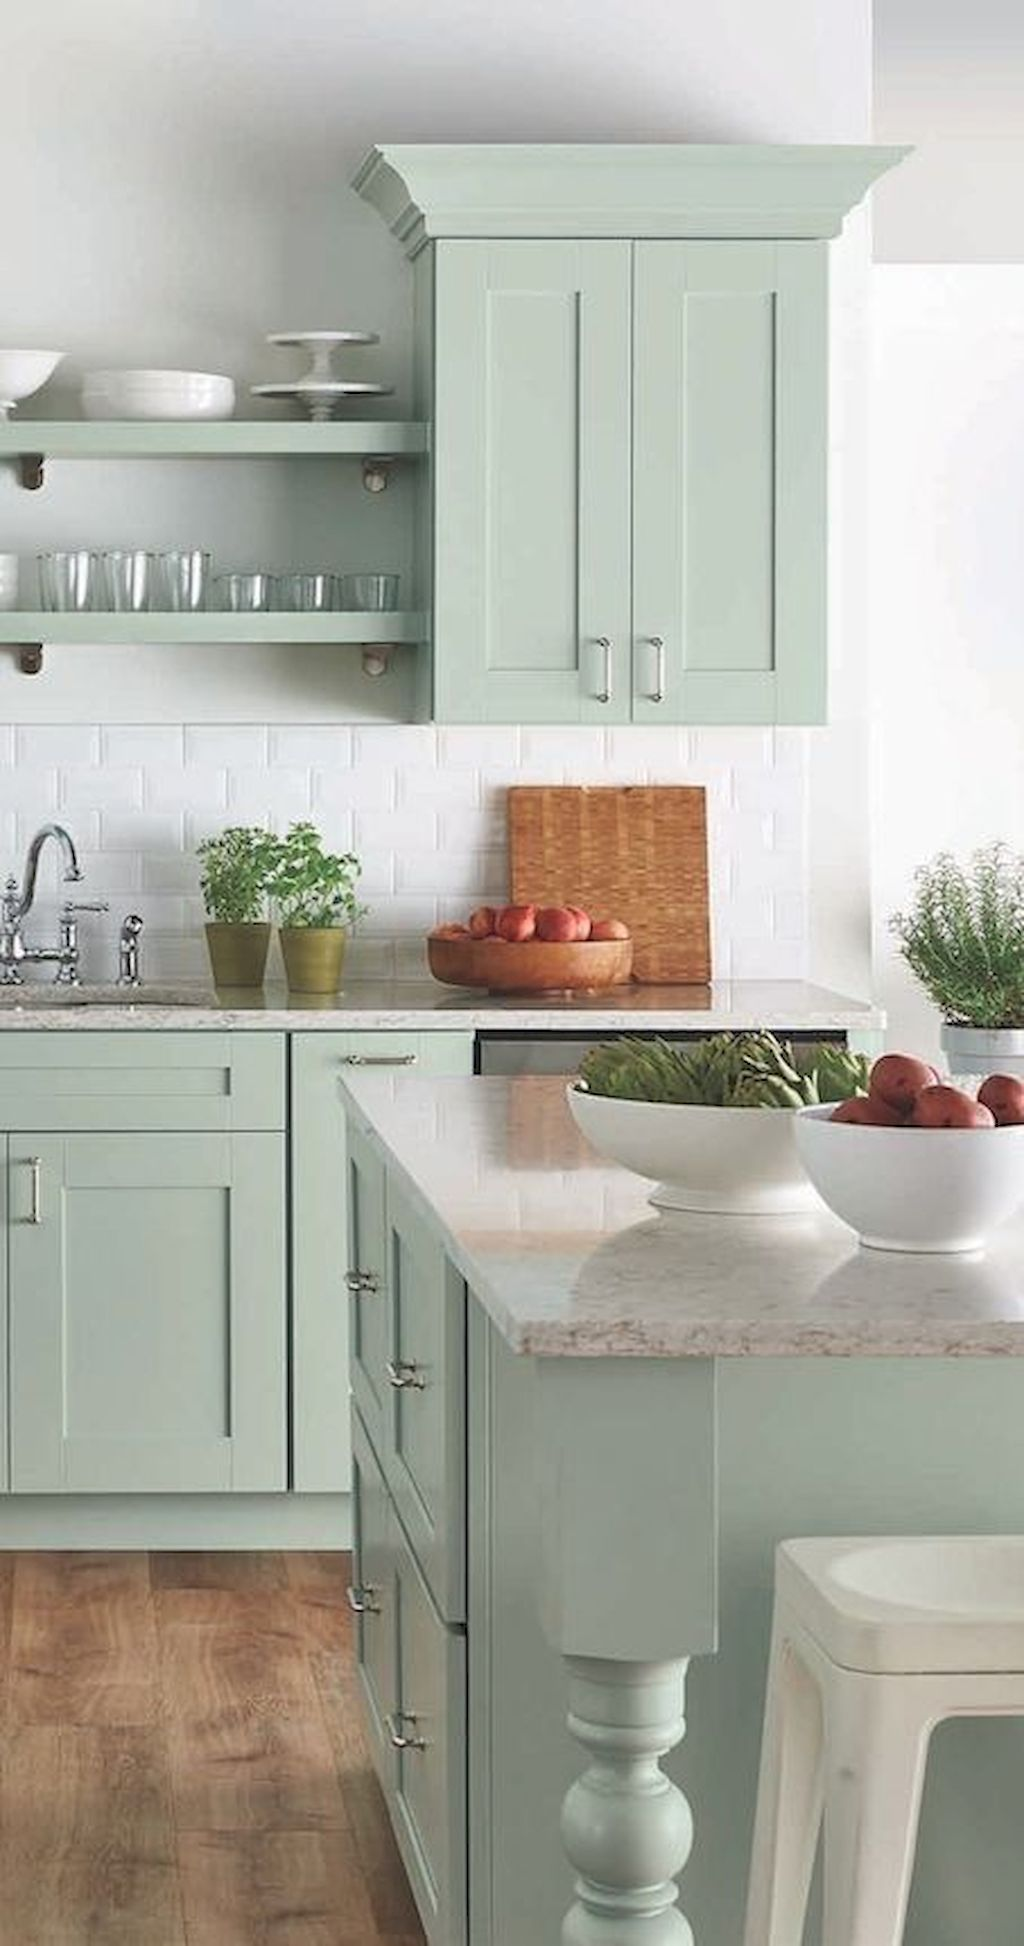 Awesome stunning rustic farmhouse kitchen cabinets remodel ideas